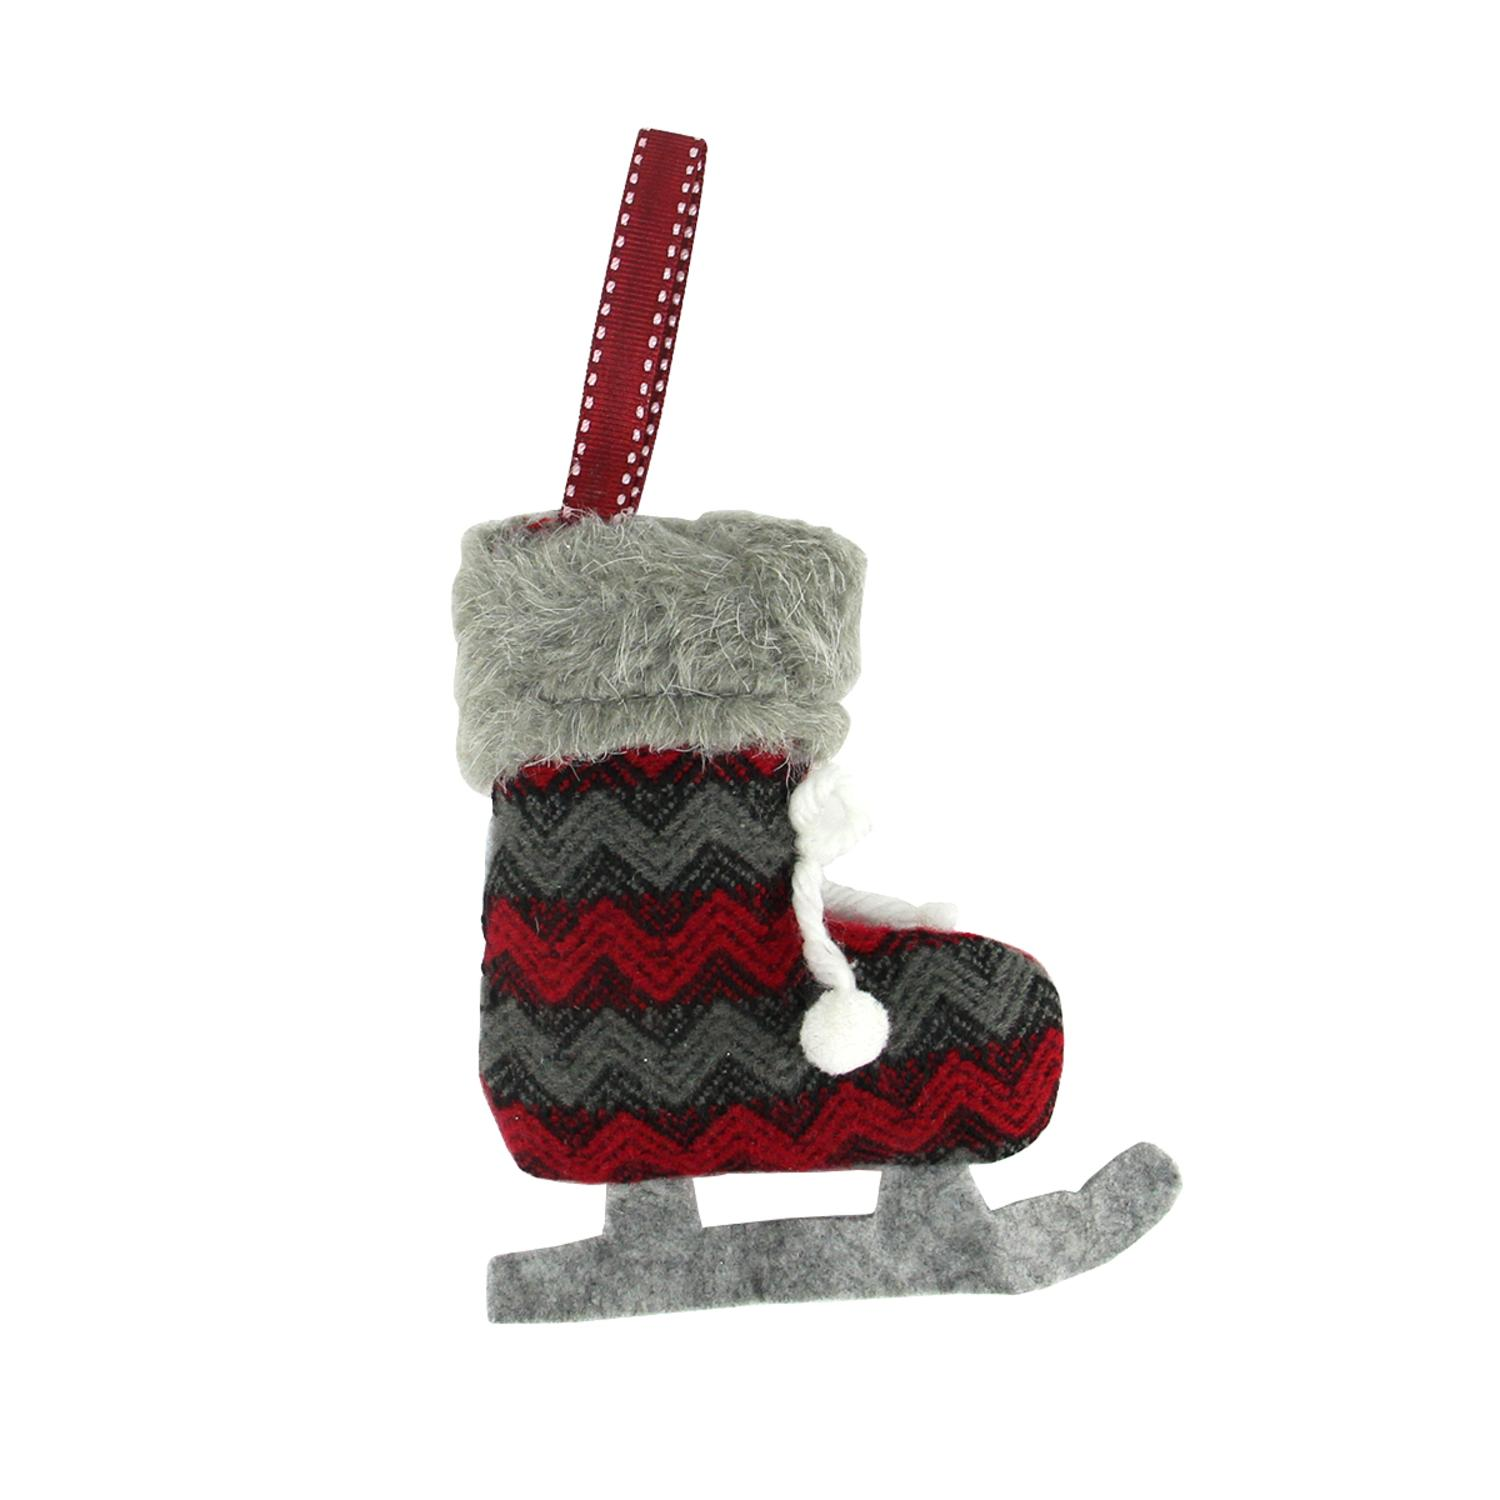 ''5.5'''' Red and Black Chevron Plush Knit ICE SKATE Christmas Ornament''